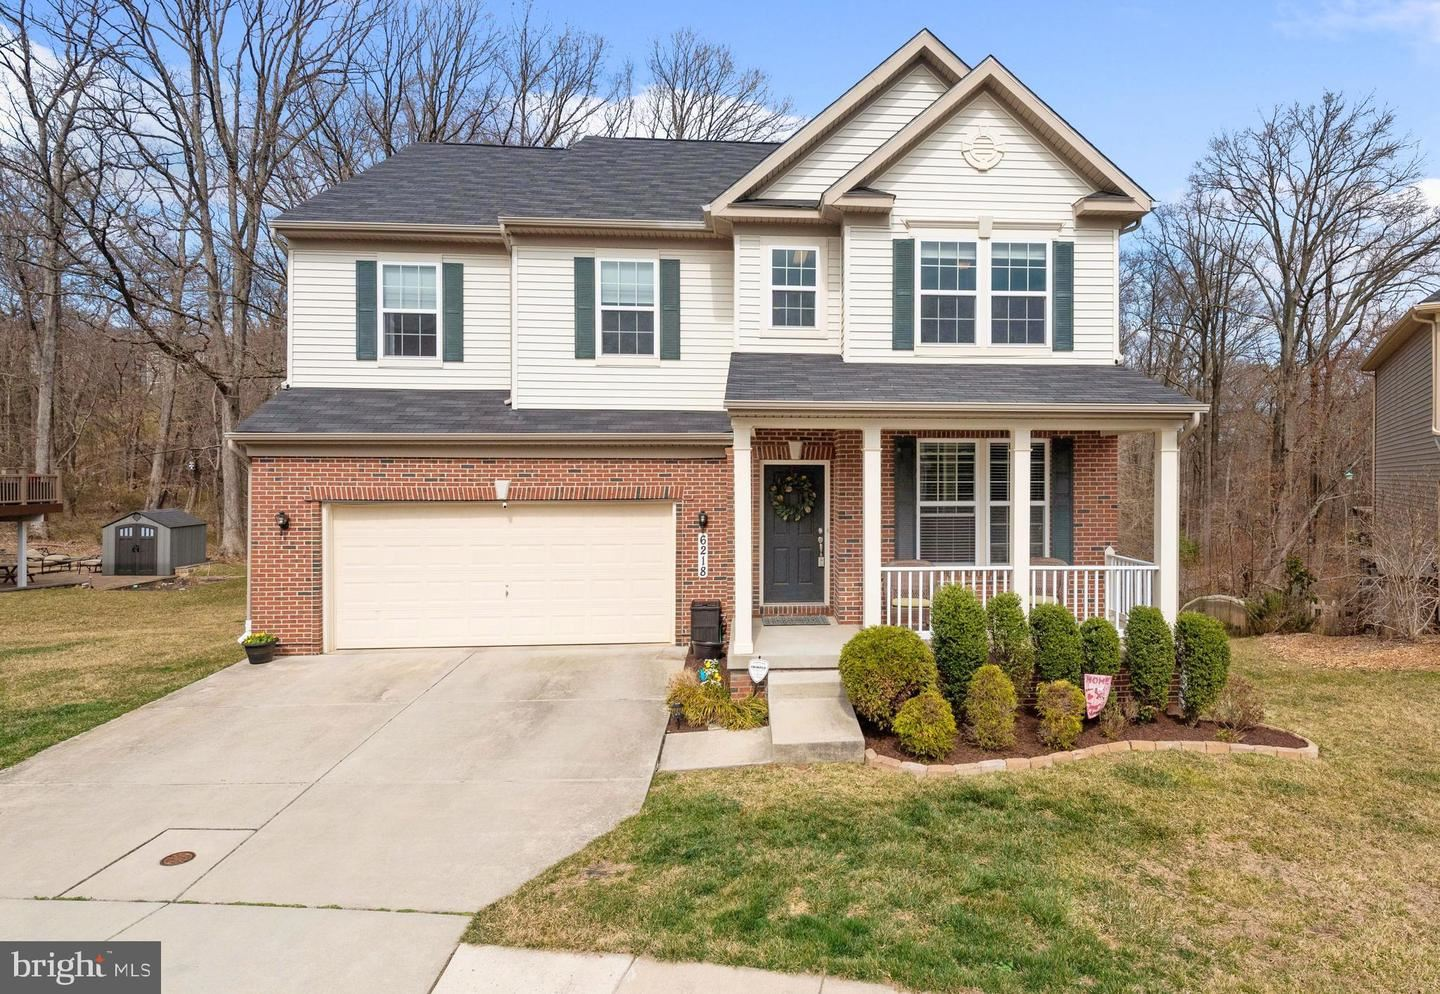 6218 MILL RIVER CT, Hanover, MD 21076 - MLS#: MDHW291386